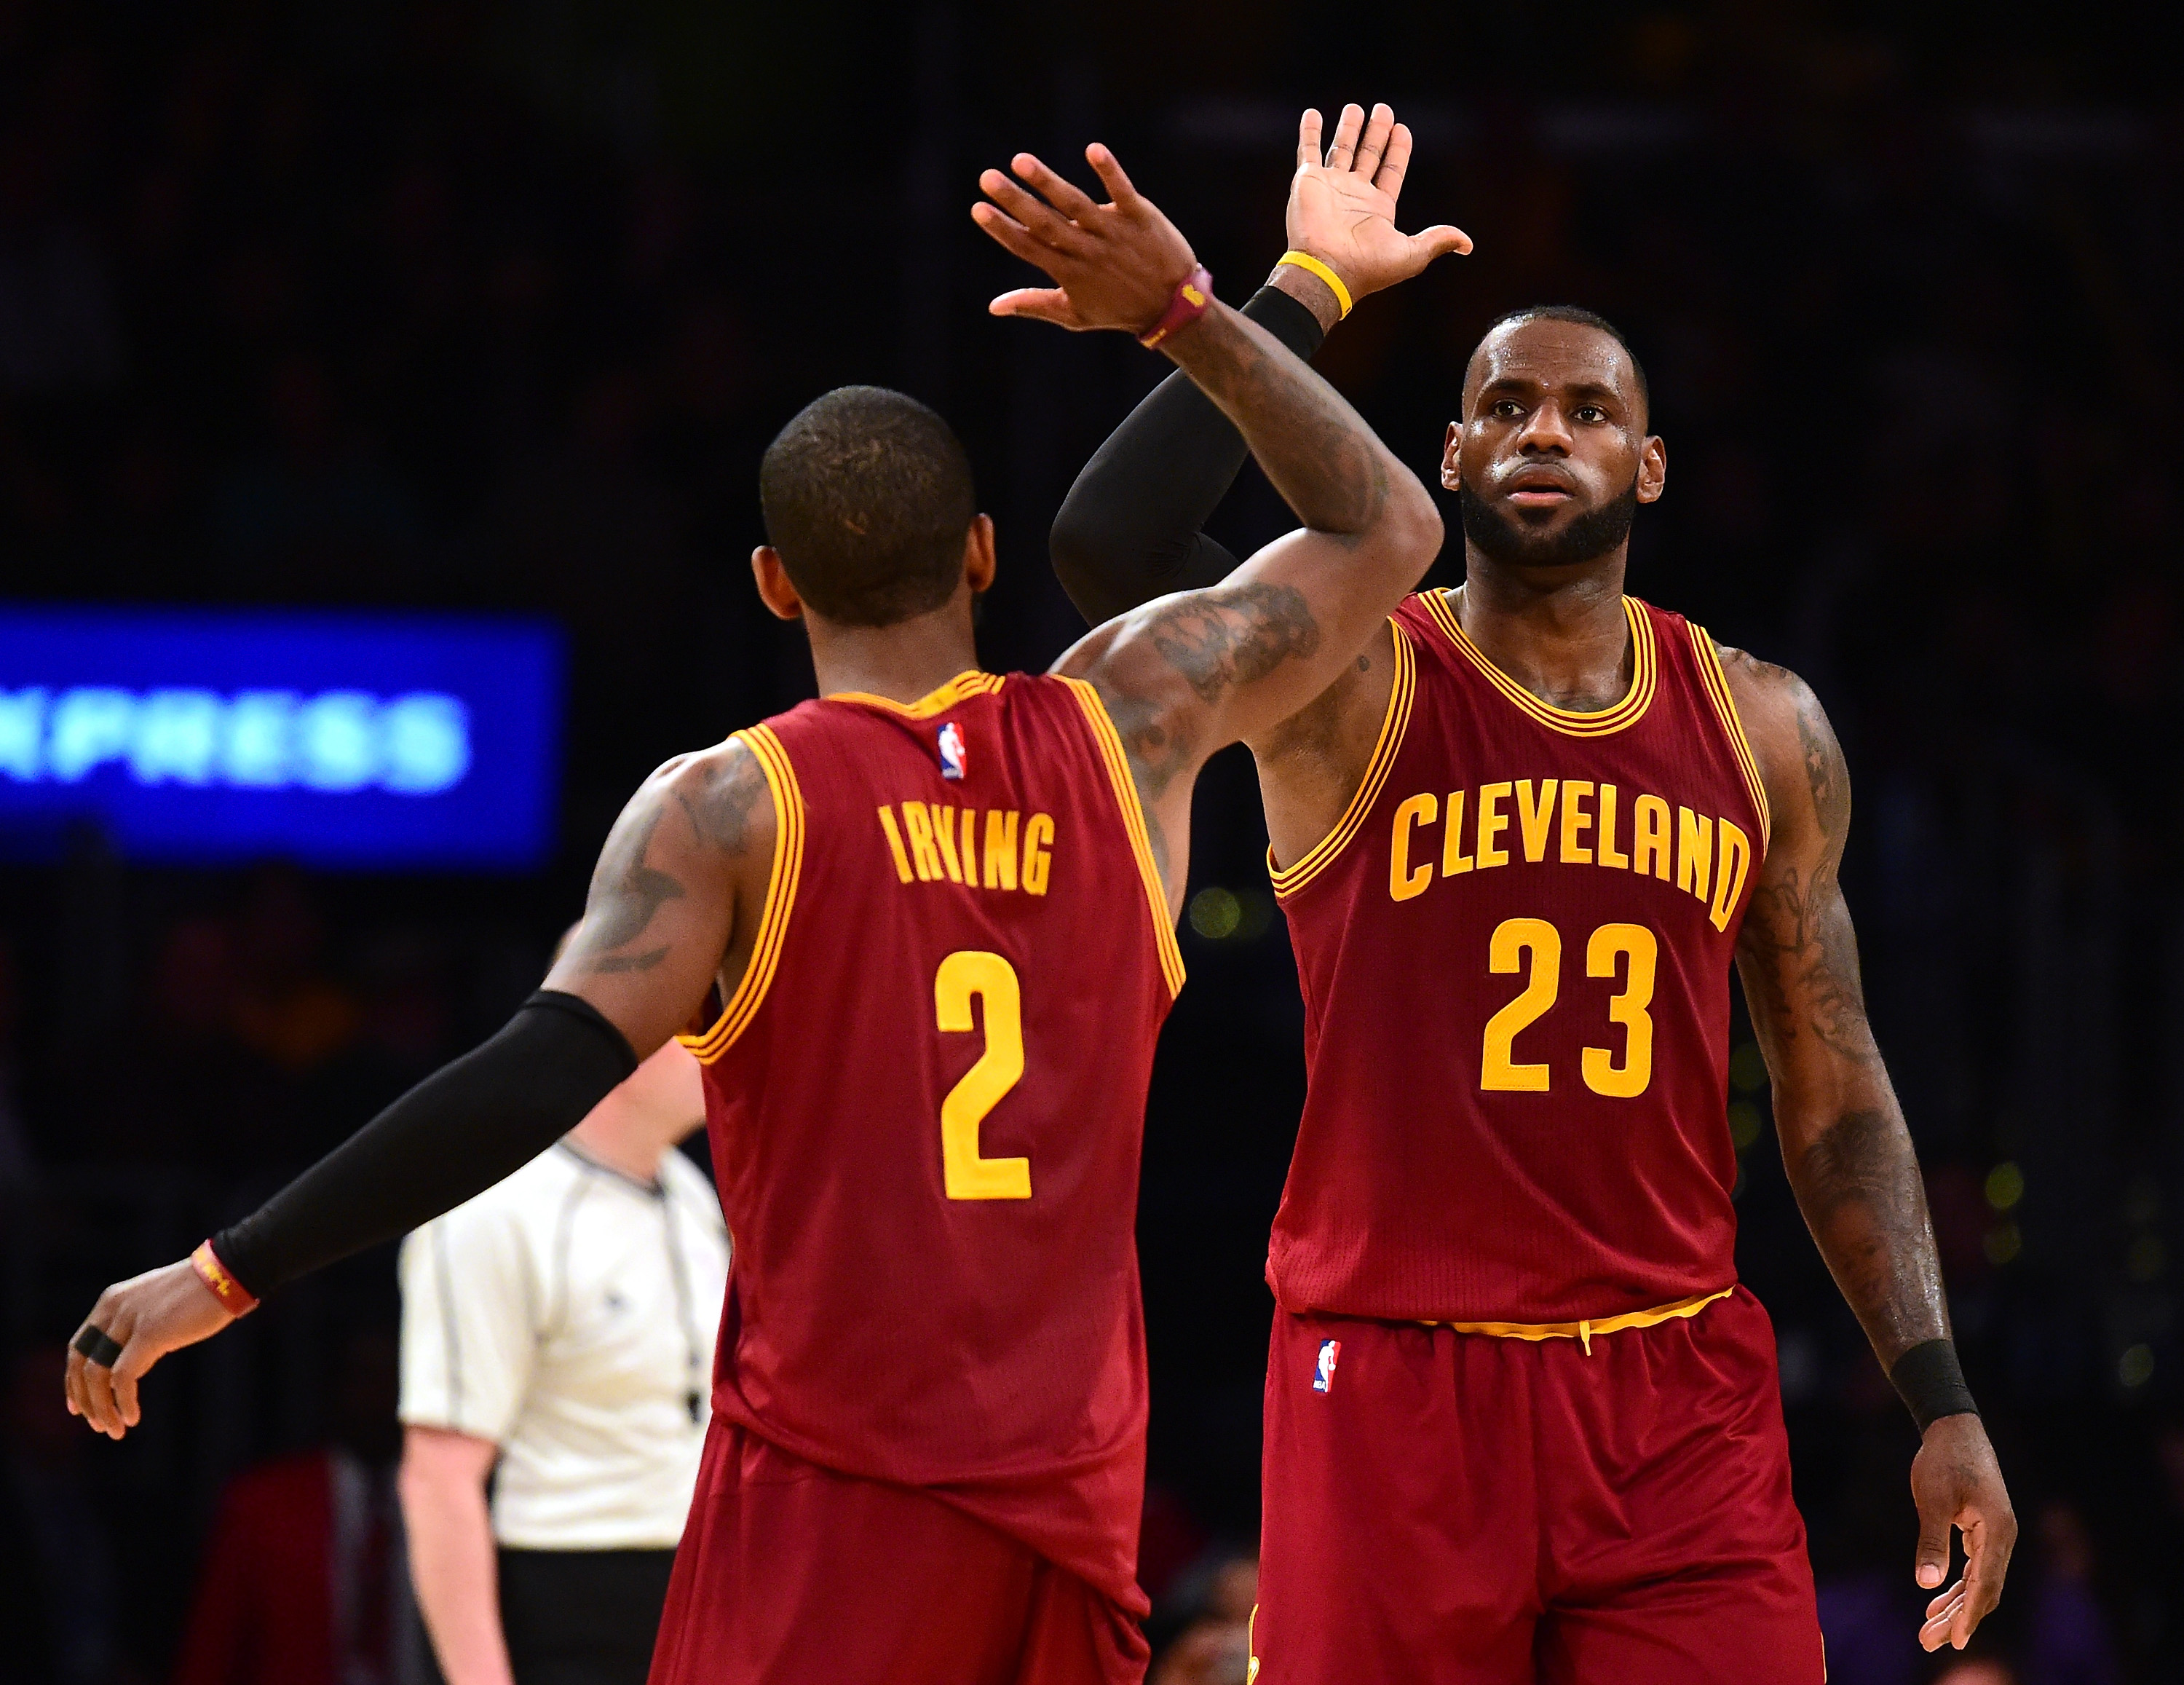 Cleveland Cavaliers: 3 Ways The Cleveland Cavaliers Can Retool For Next Season